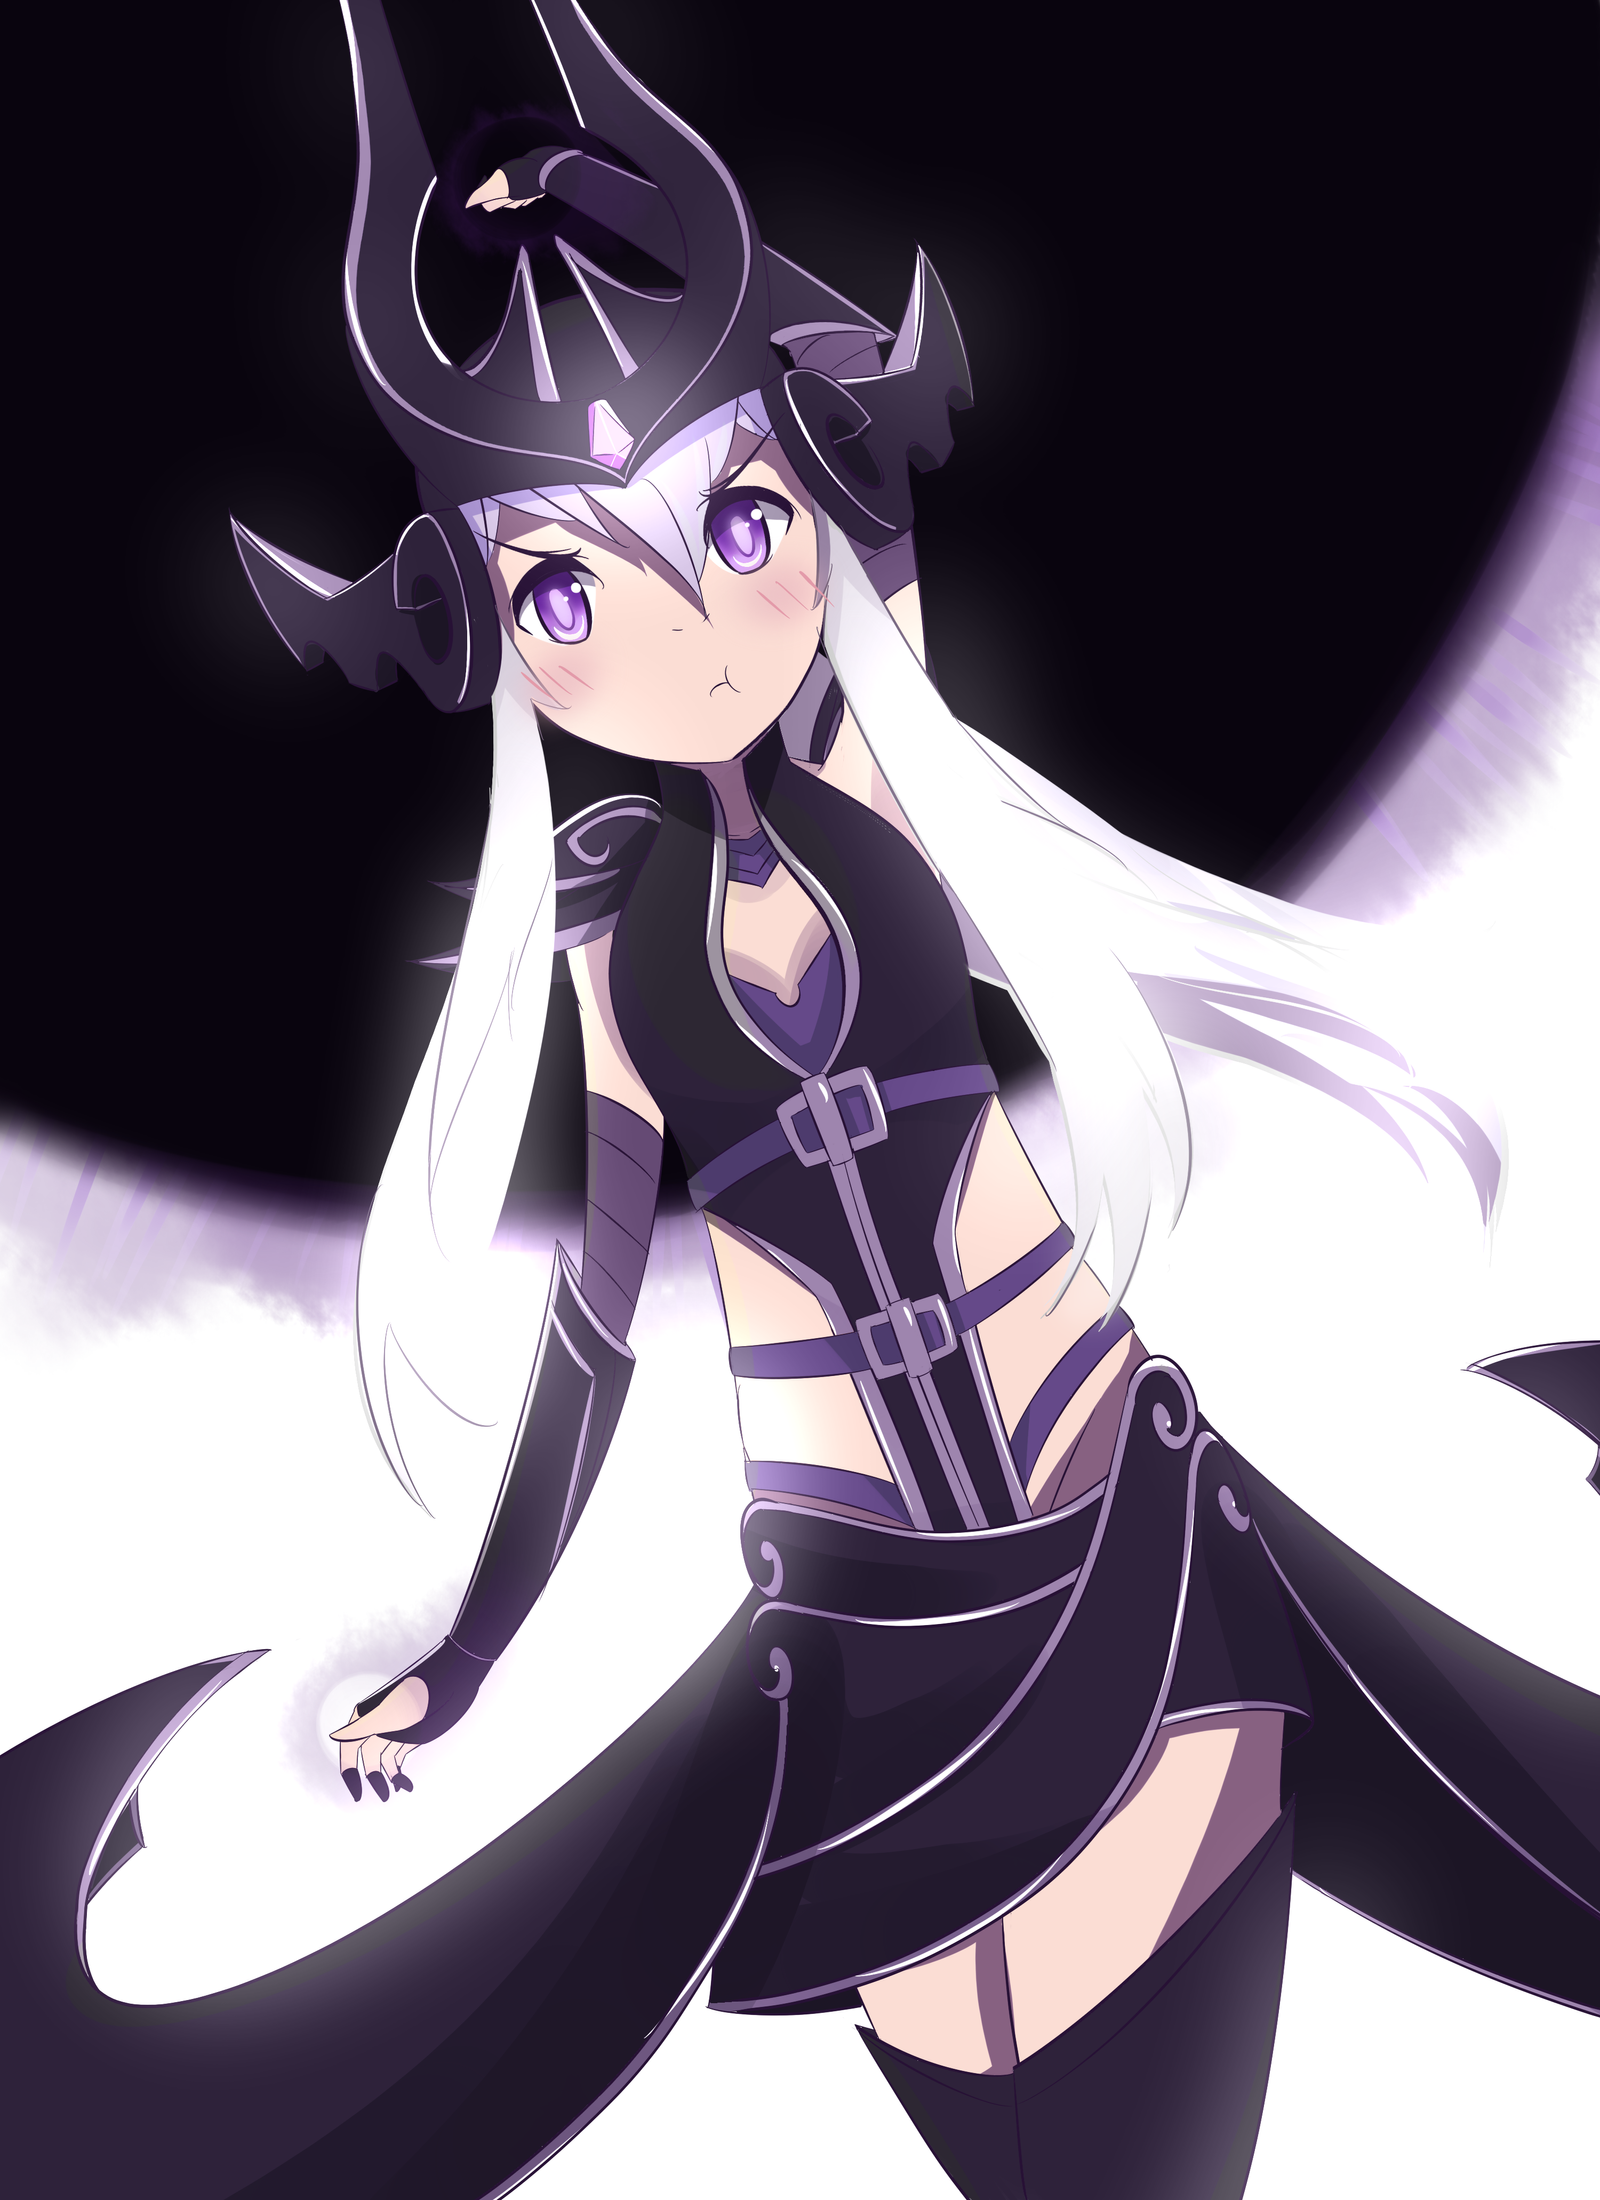 Super Massive Dark Sphere by Phibonnachee